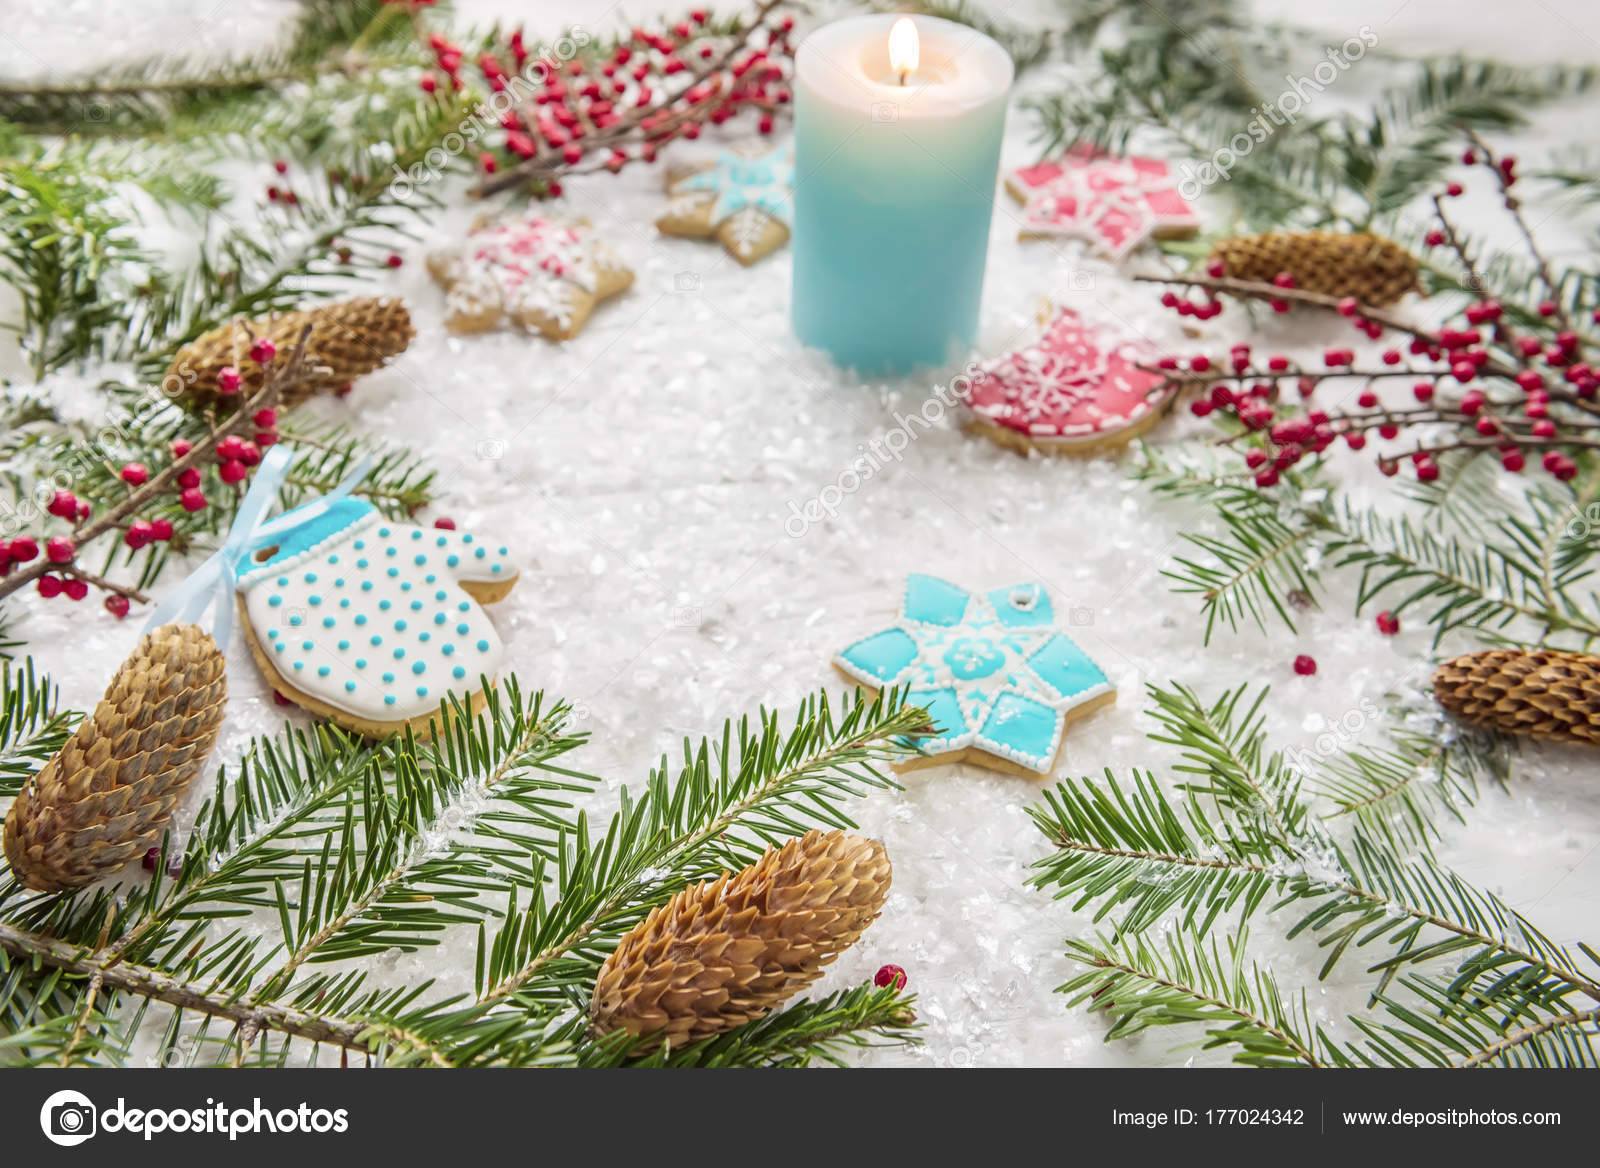 festive christmas new years screensaver postcard background homemade bright gingerbreads branches of a christmas tree snow and a burning candle on a